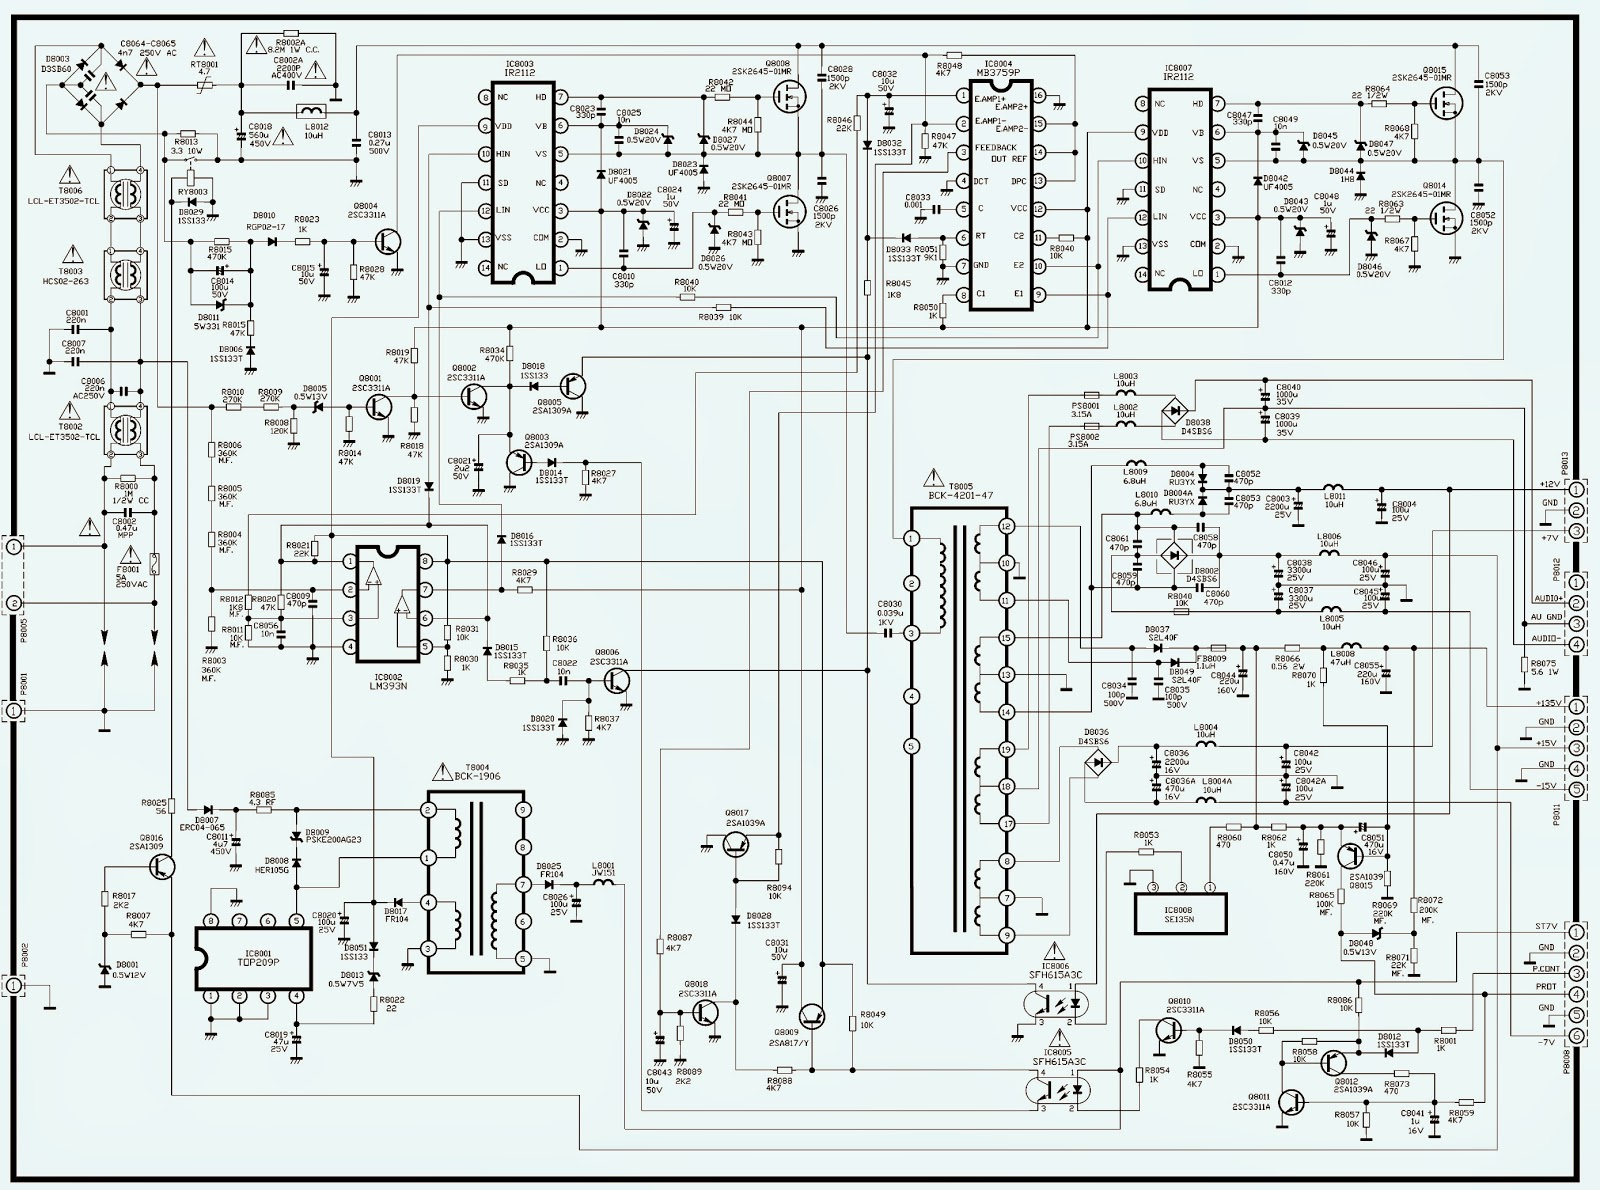 Computer Power Supply- Diagram And Operation – readingrat.net